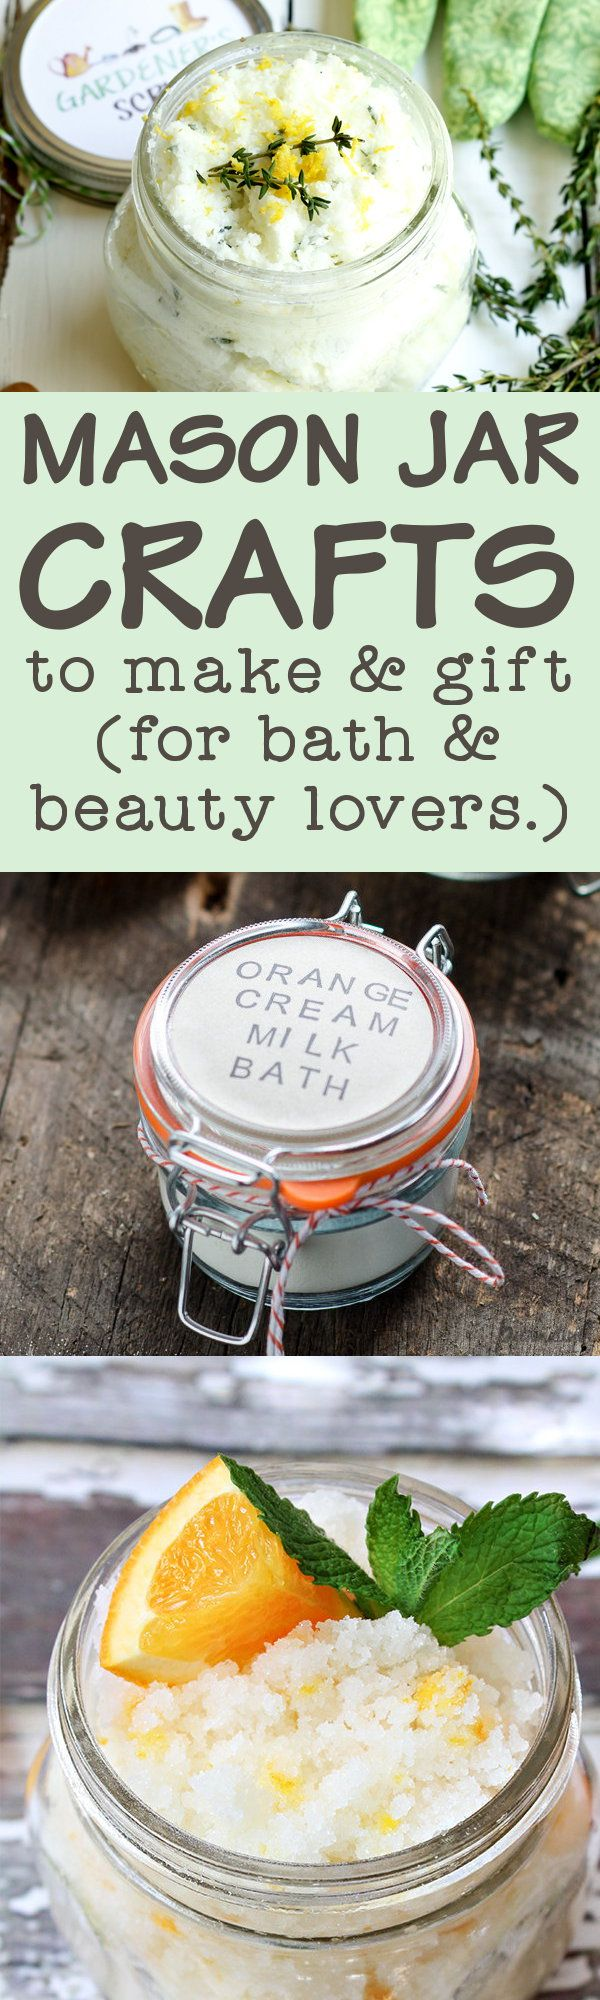 Mason Jar Crafts for Bath & Beauty Lovers (The Perfect DIY Treat for Skin) #bathingbeauties